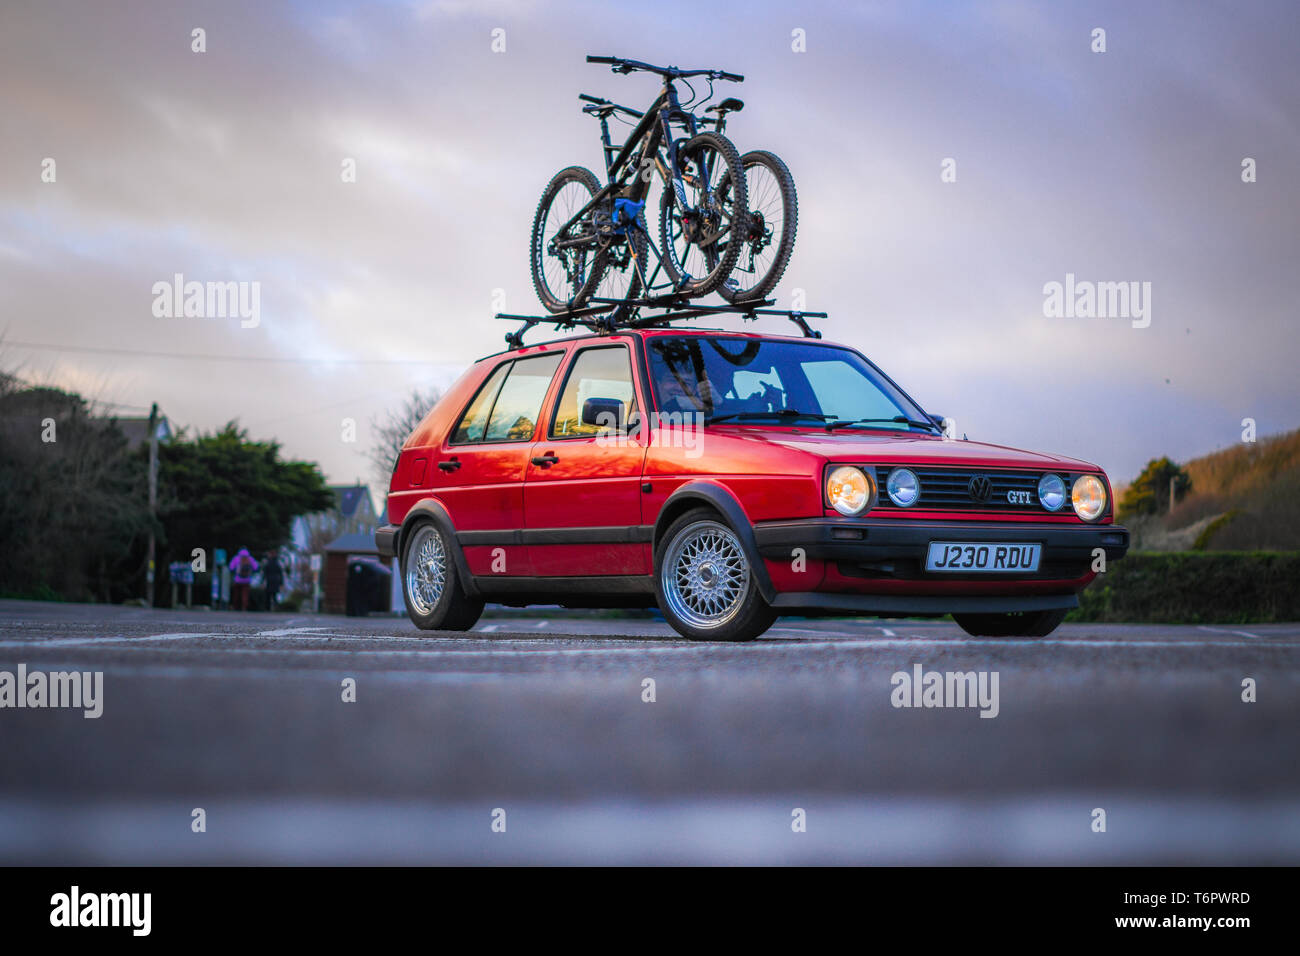 Volkswagen MK2 Golf GTI Stance Show Car Porthcurno Car Park Bike Racks MTB Travel Adventure Lifestyle Classic Car - Stock Image